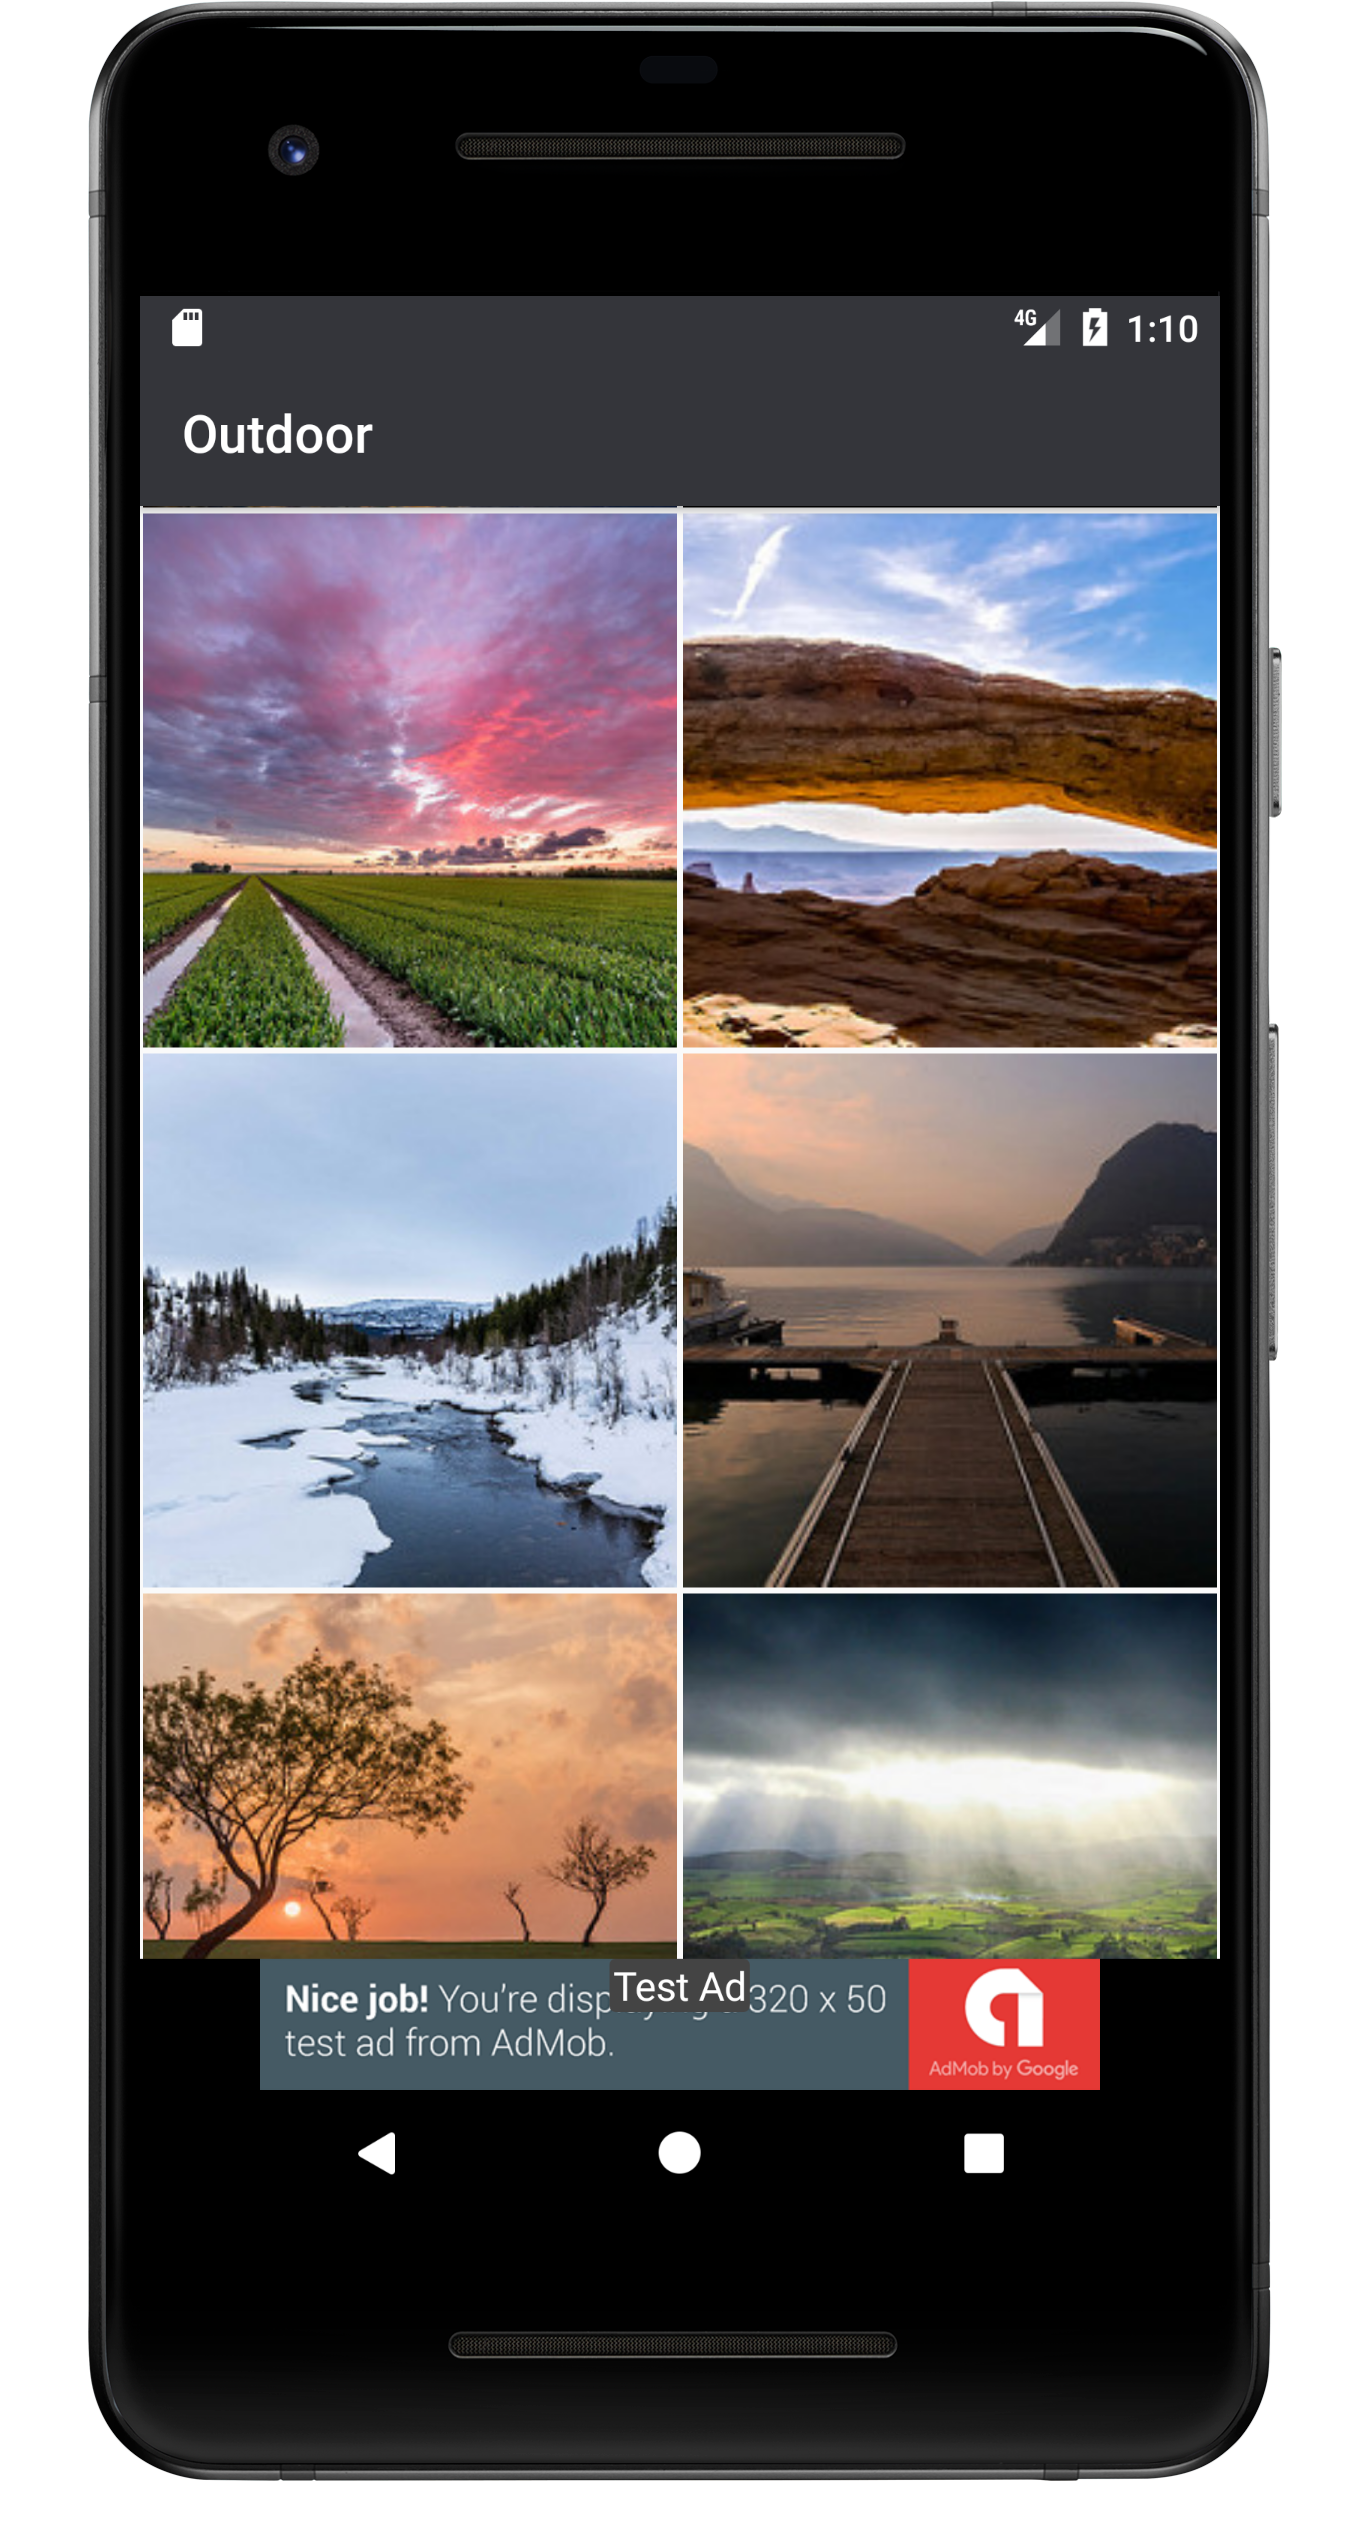 Android Wallpaper App Based On Flickr Api